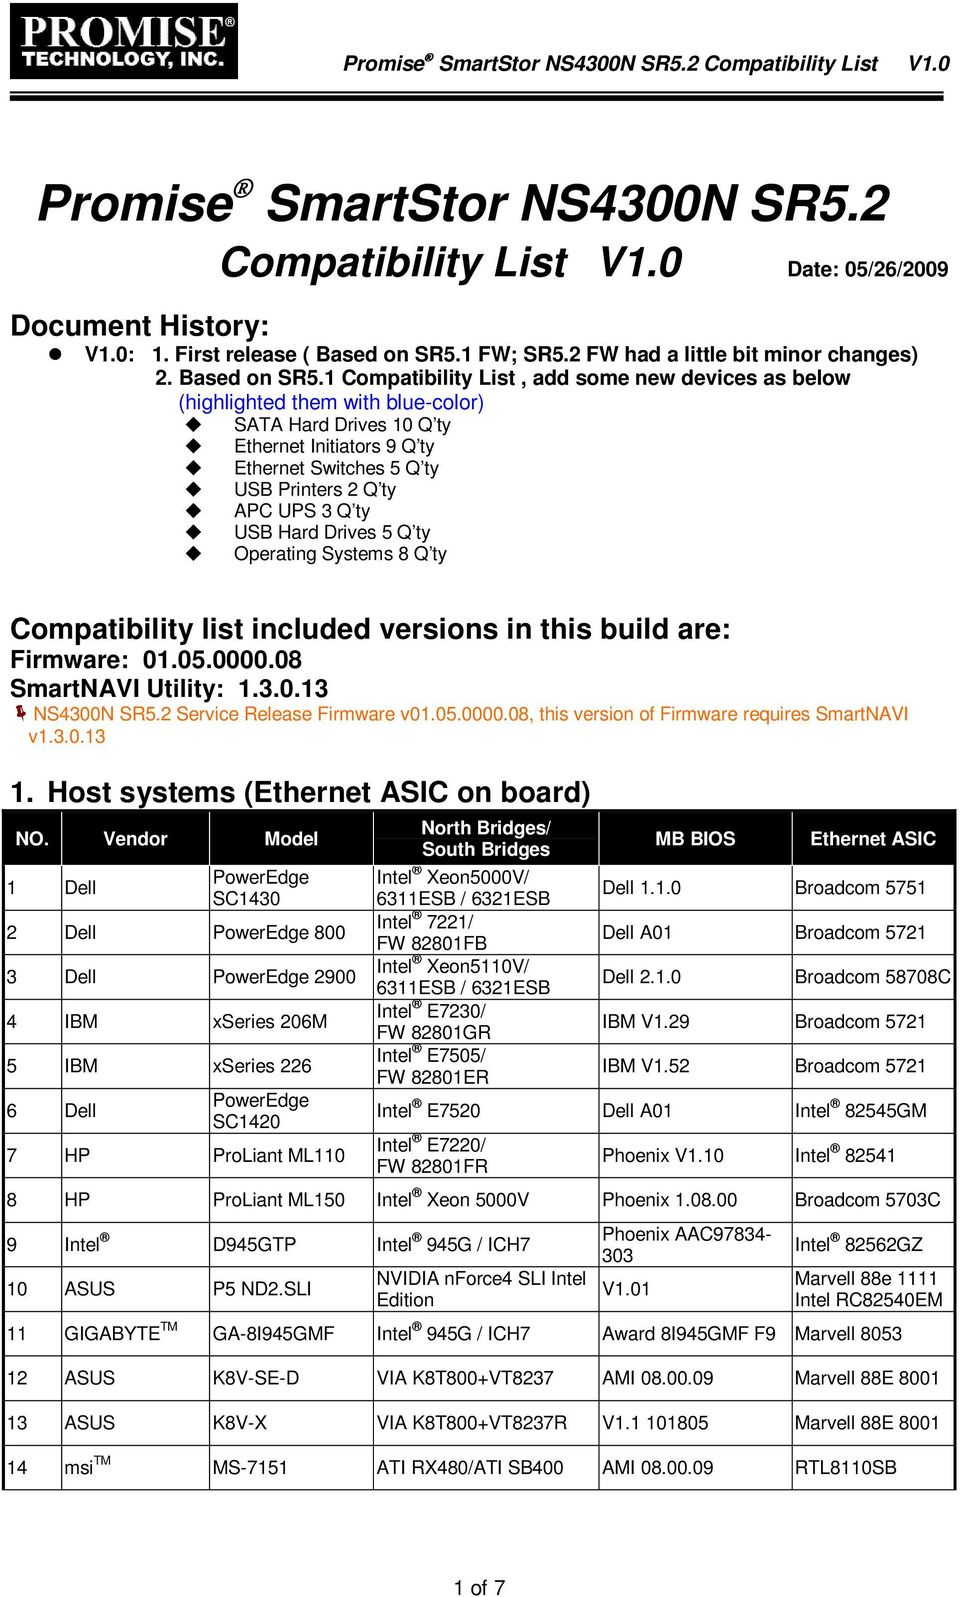 1 Compatibility List, add some new devices as below (highlighted them with blue-color) SATA Hard Drives 10 Q ty Ethernet Initiators 9 Q ty Ethernet Switches 5 Q ty USB Printers 2 Q ty APC UPS 3 Q ty